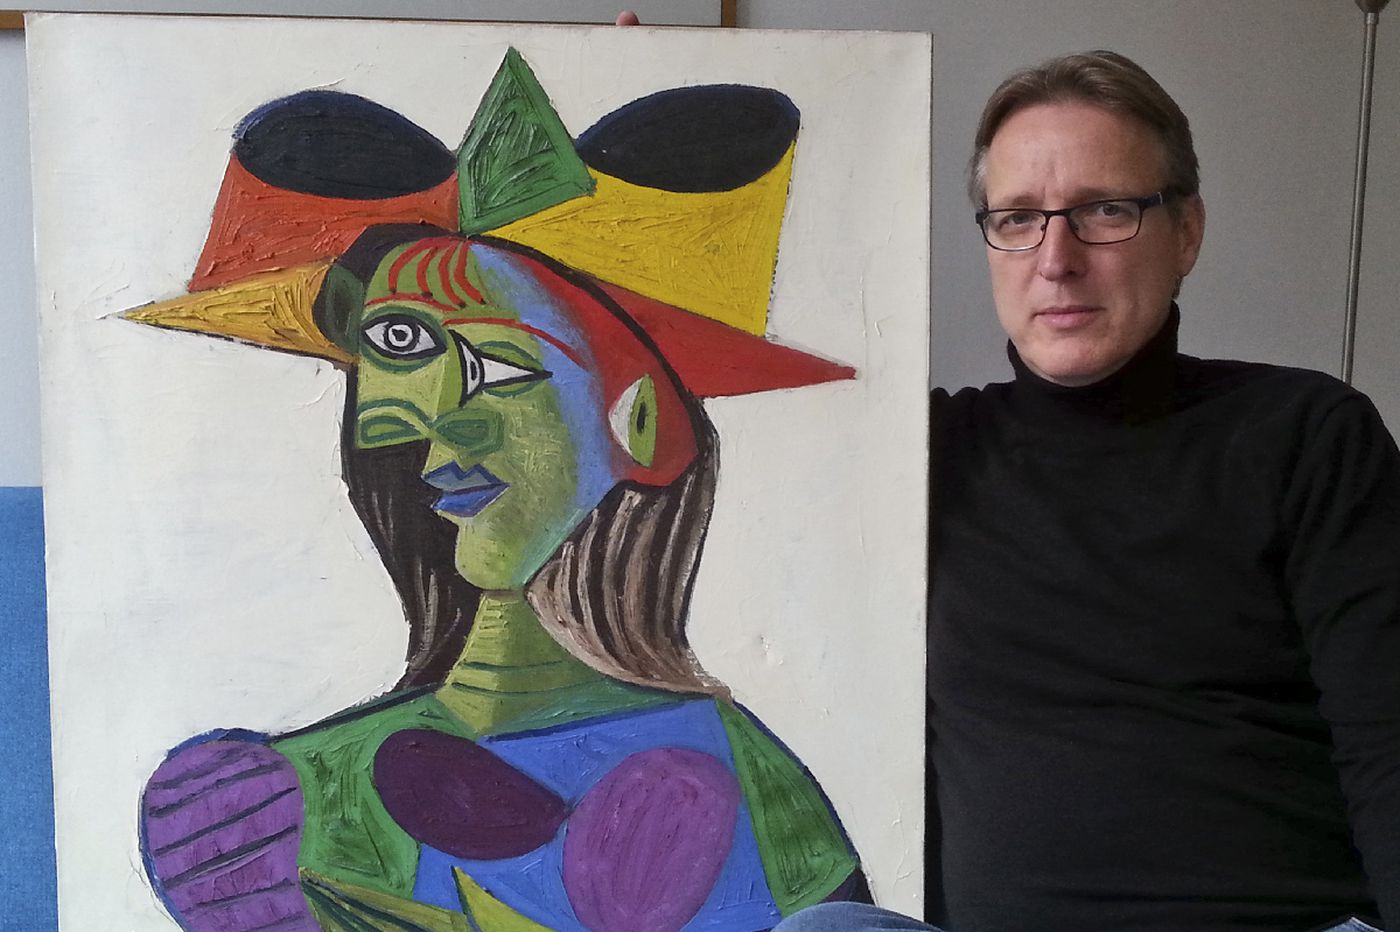 A stolen Picasso vanished for 20 years. Then the art world's 'Indiana Jones' took the case.